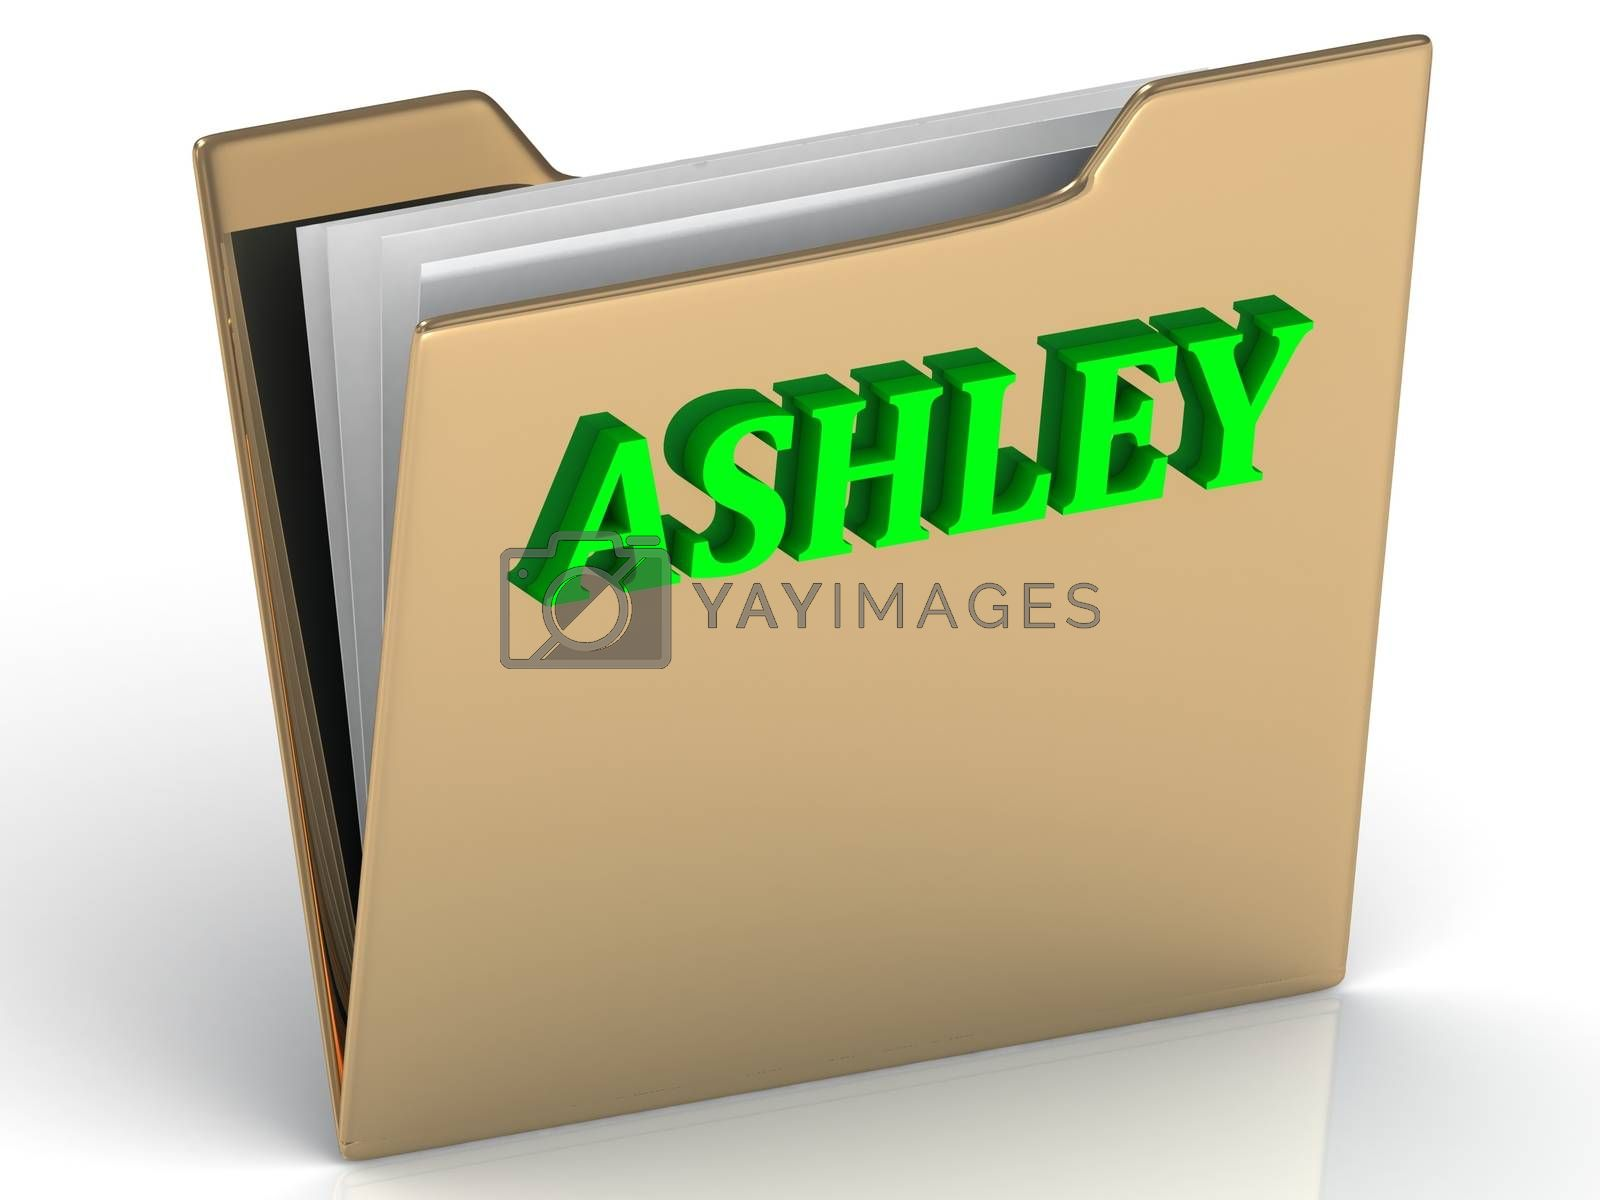 ASHLEY- bright green letters on gold paperwork folder on a white background